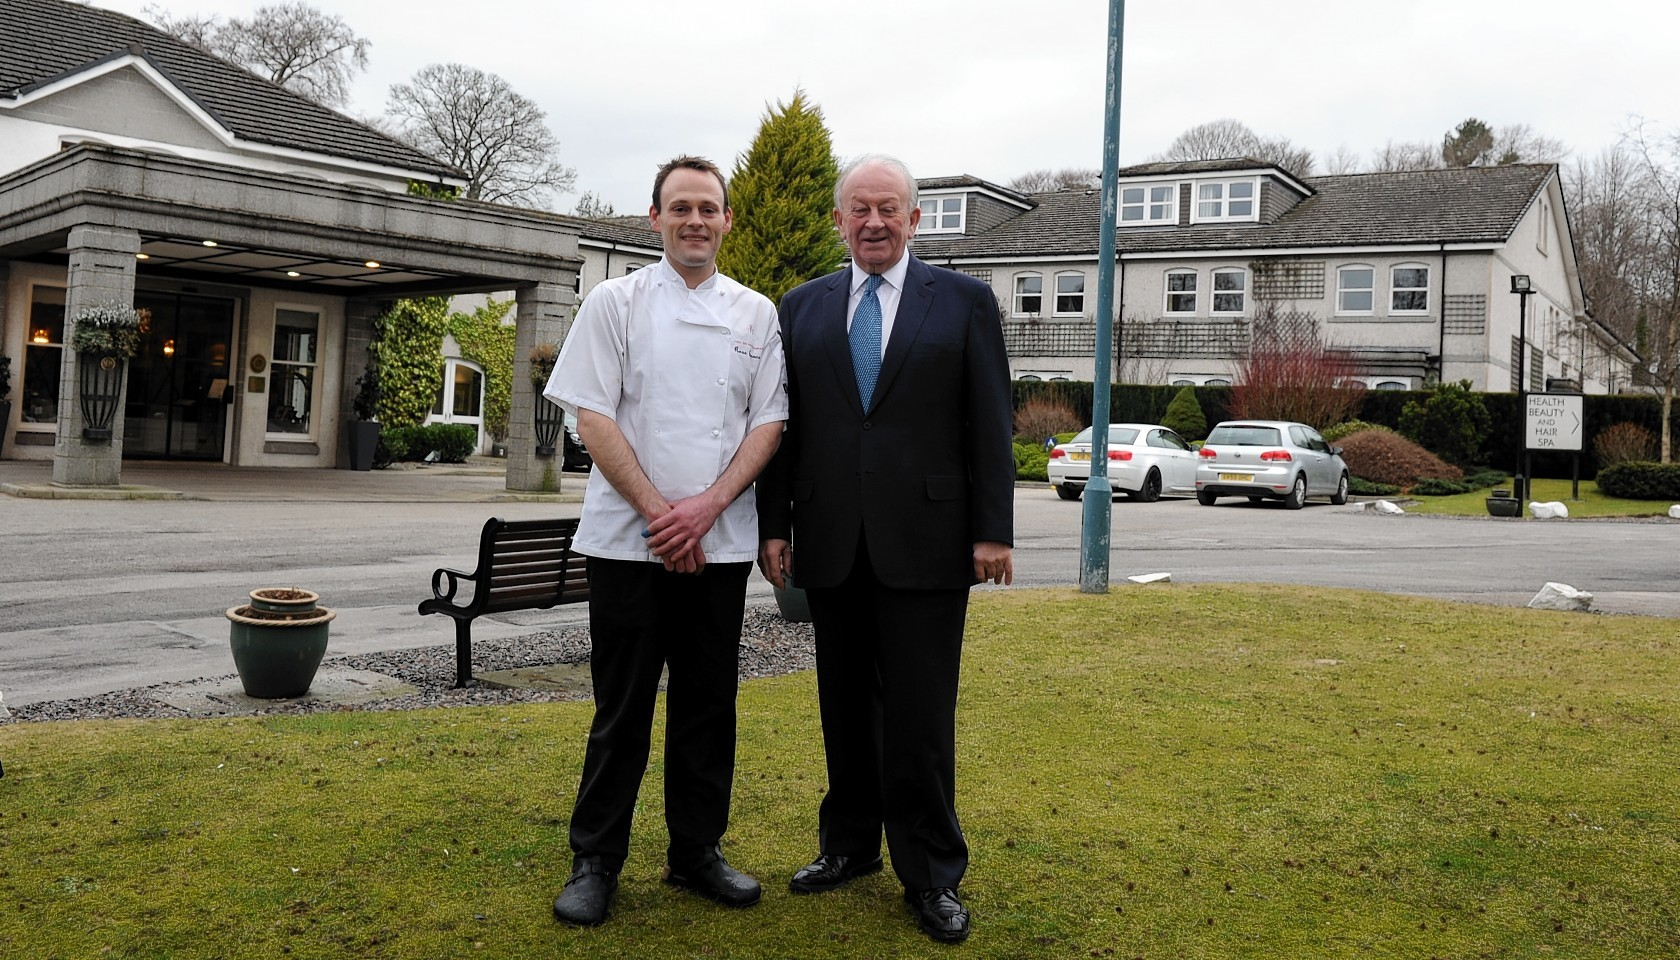 Stewart Spence, owner of the Marcliffe Hotel and his son, Ross